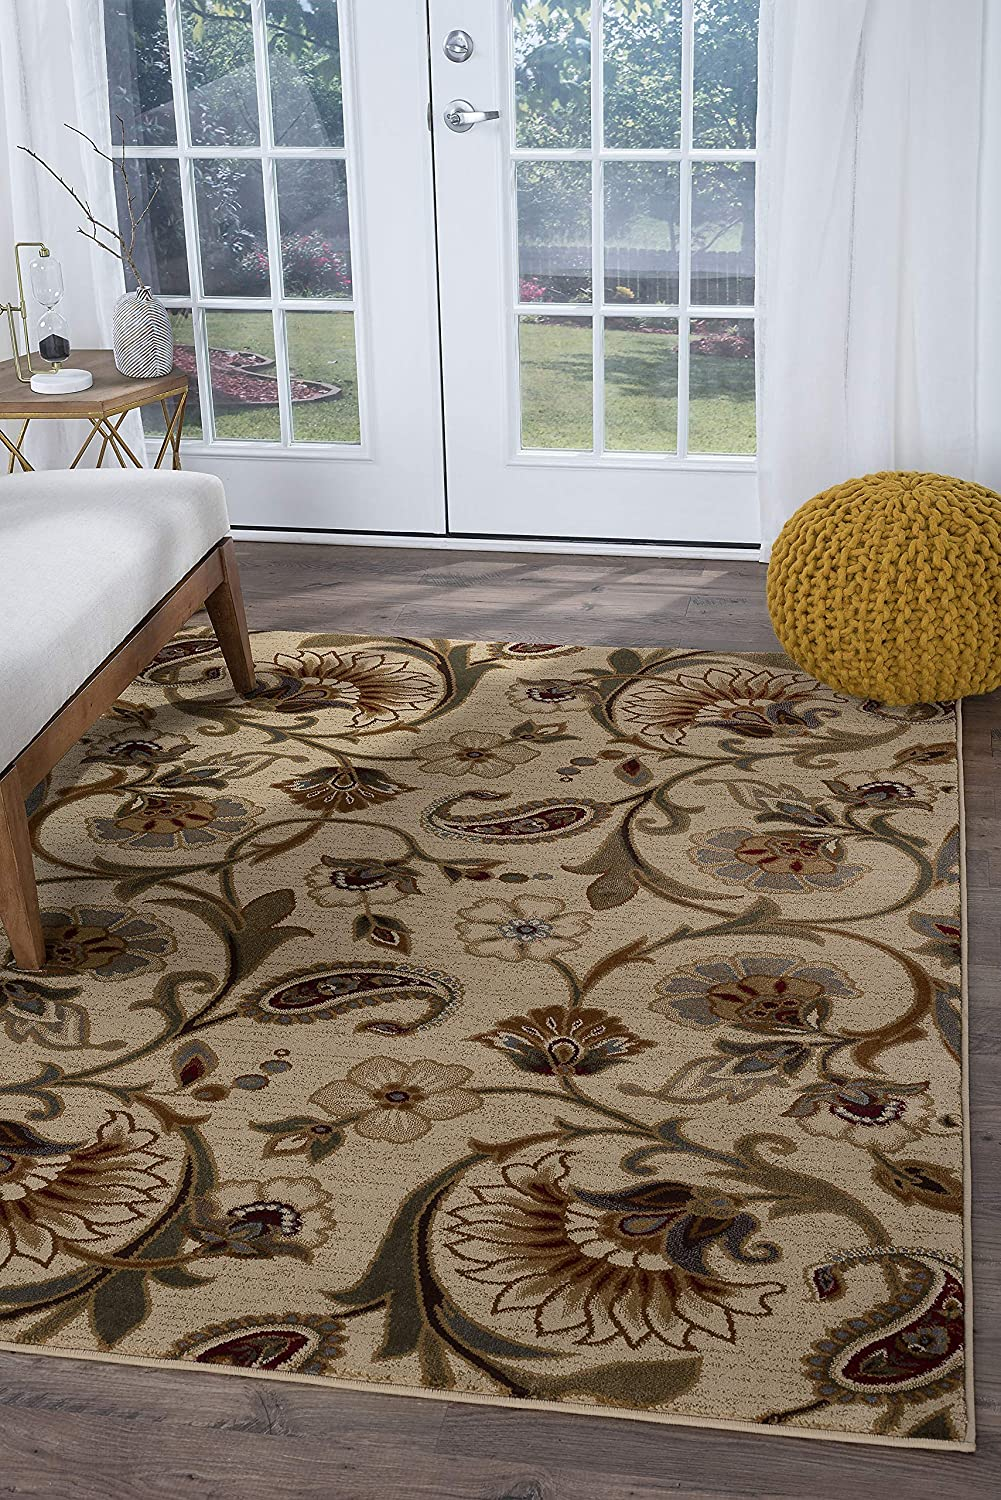 Amazon Com Tayse Fairfield Beige 8x11 Rectangle Area Rug For Living Bedroom Or Dining Room Transitional Floral Furniture Decor